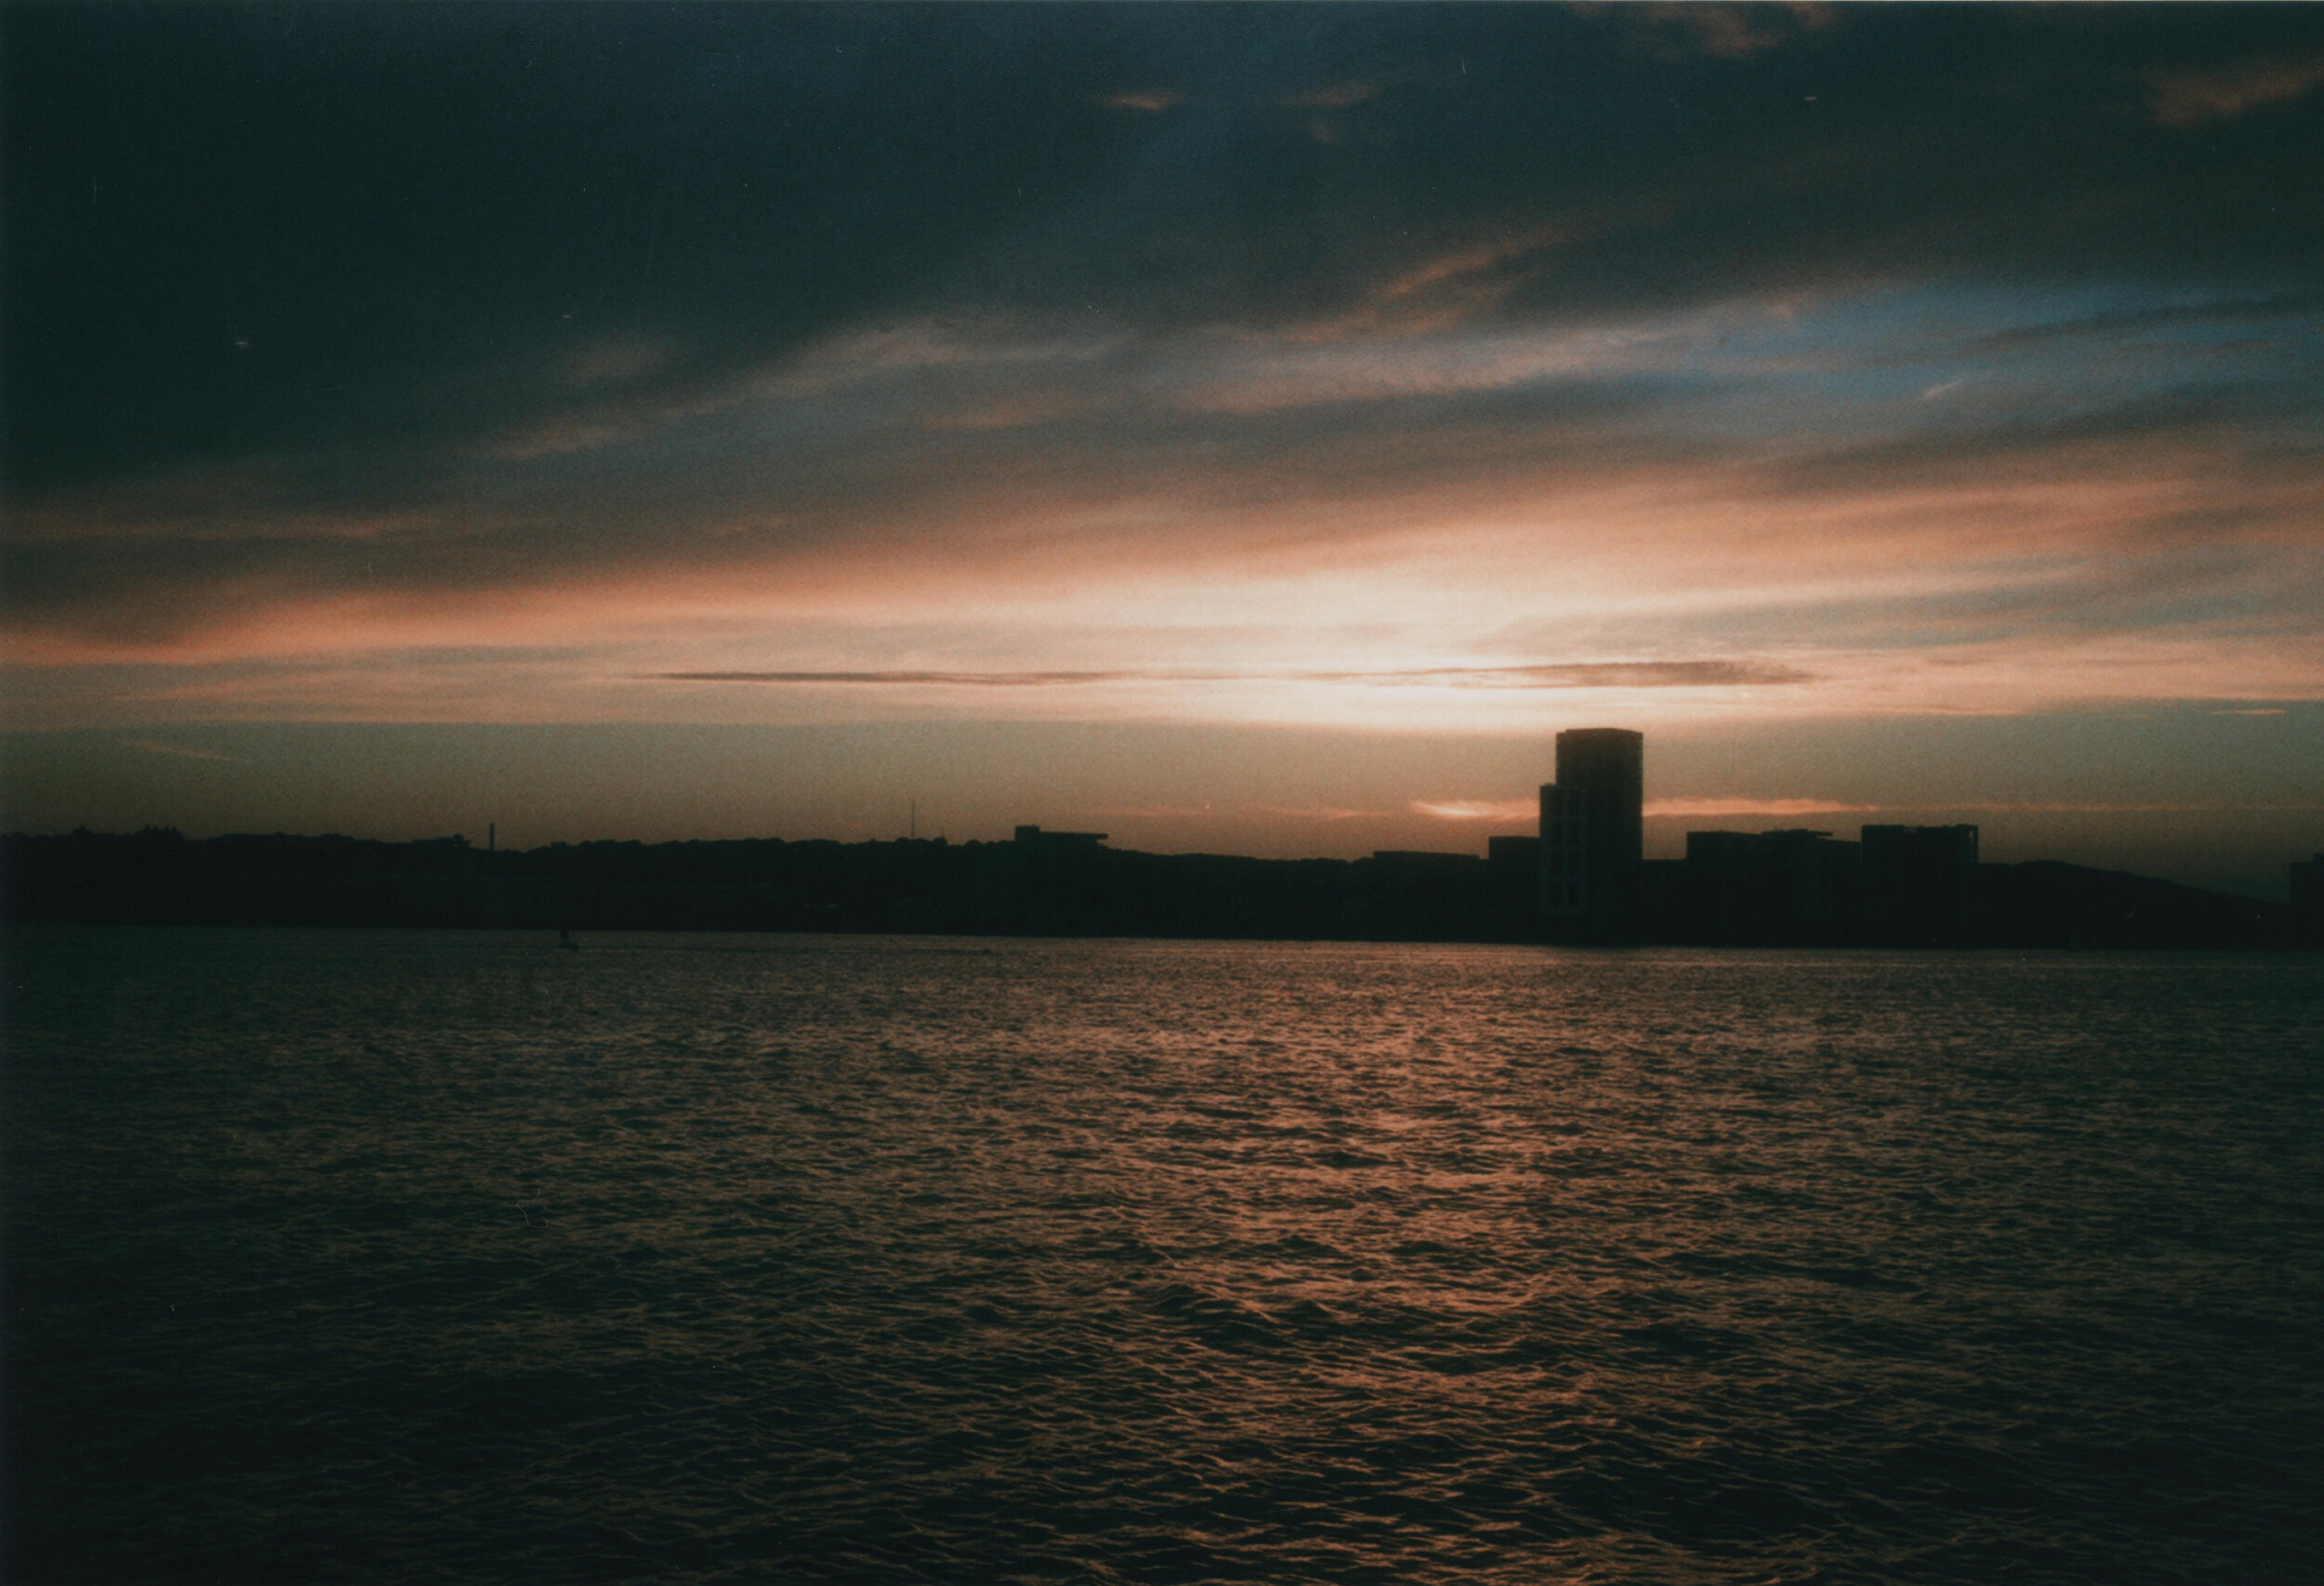 Cardiff At Sunset - Taken back in 2016 on the trusty Olympus trip and featuring In the Glasgow Gallery Of Photography's new exhibition